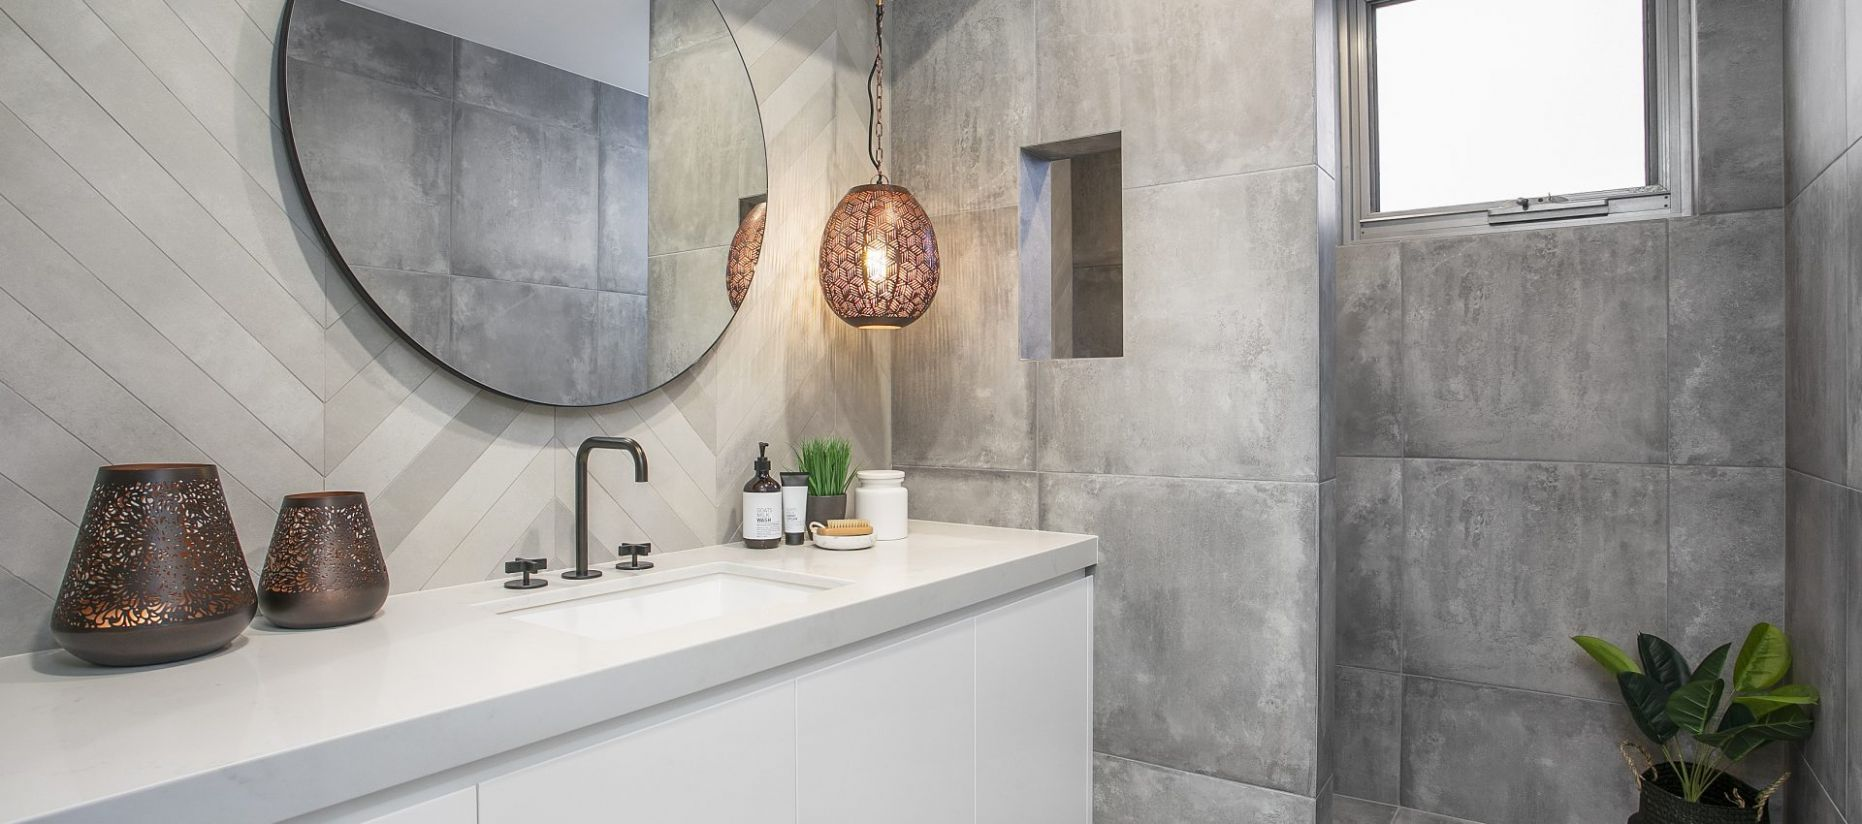 Joinery Specialists in Sydney | Tasker Joinery - bathroom joinery ideas